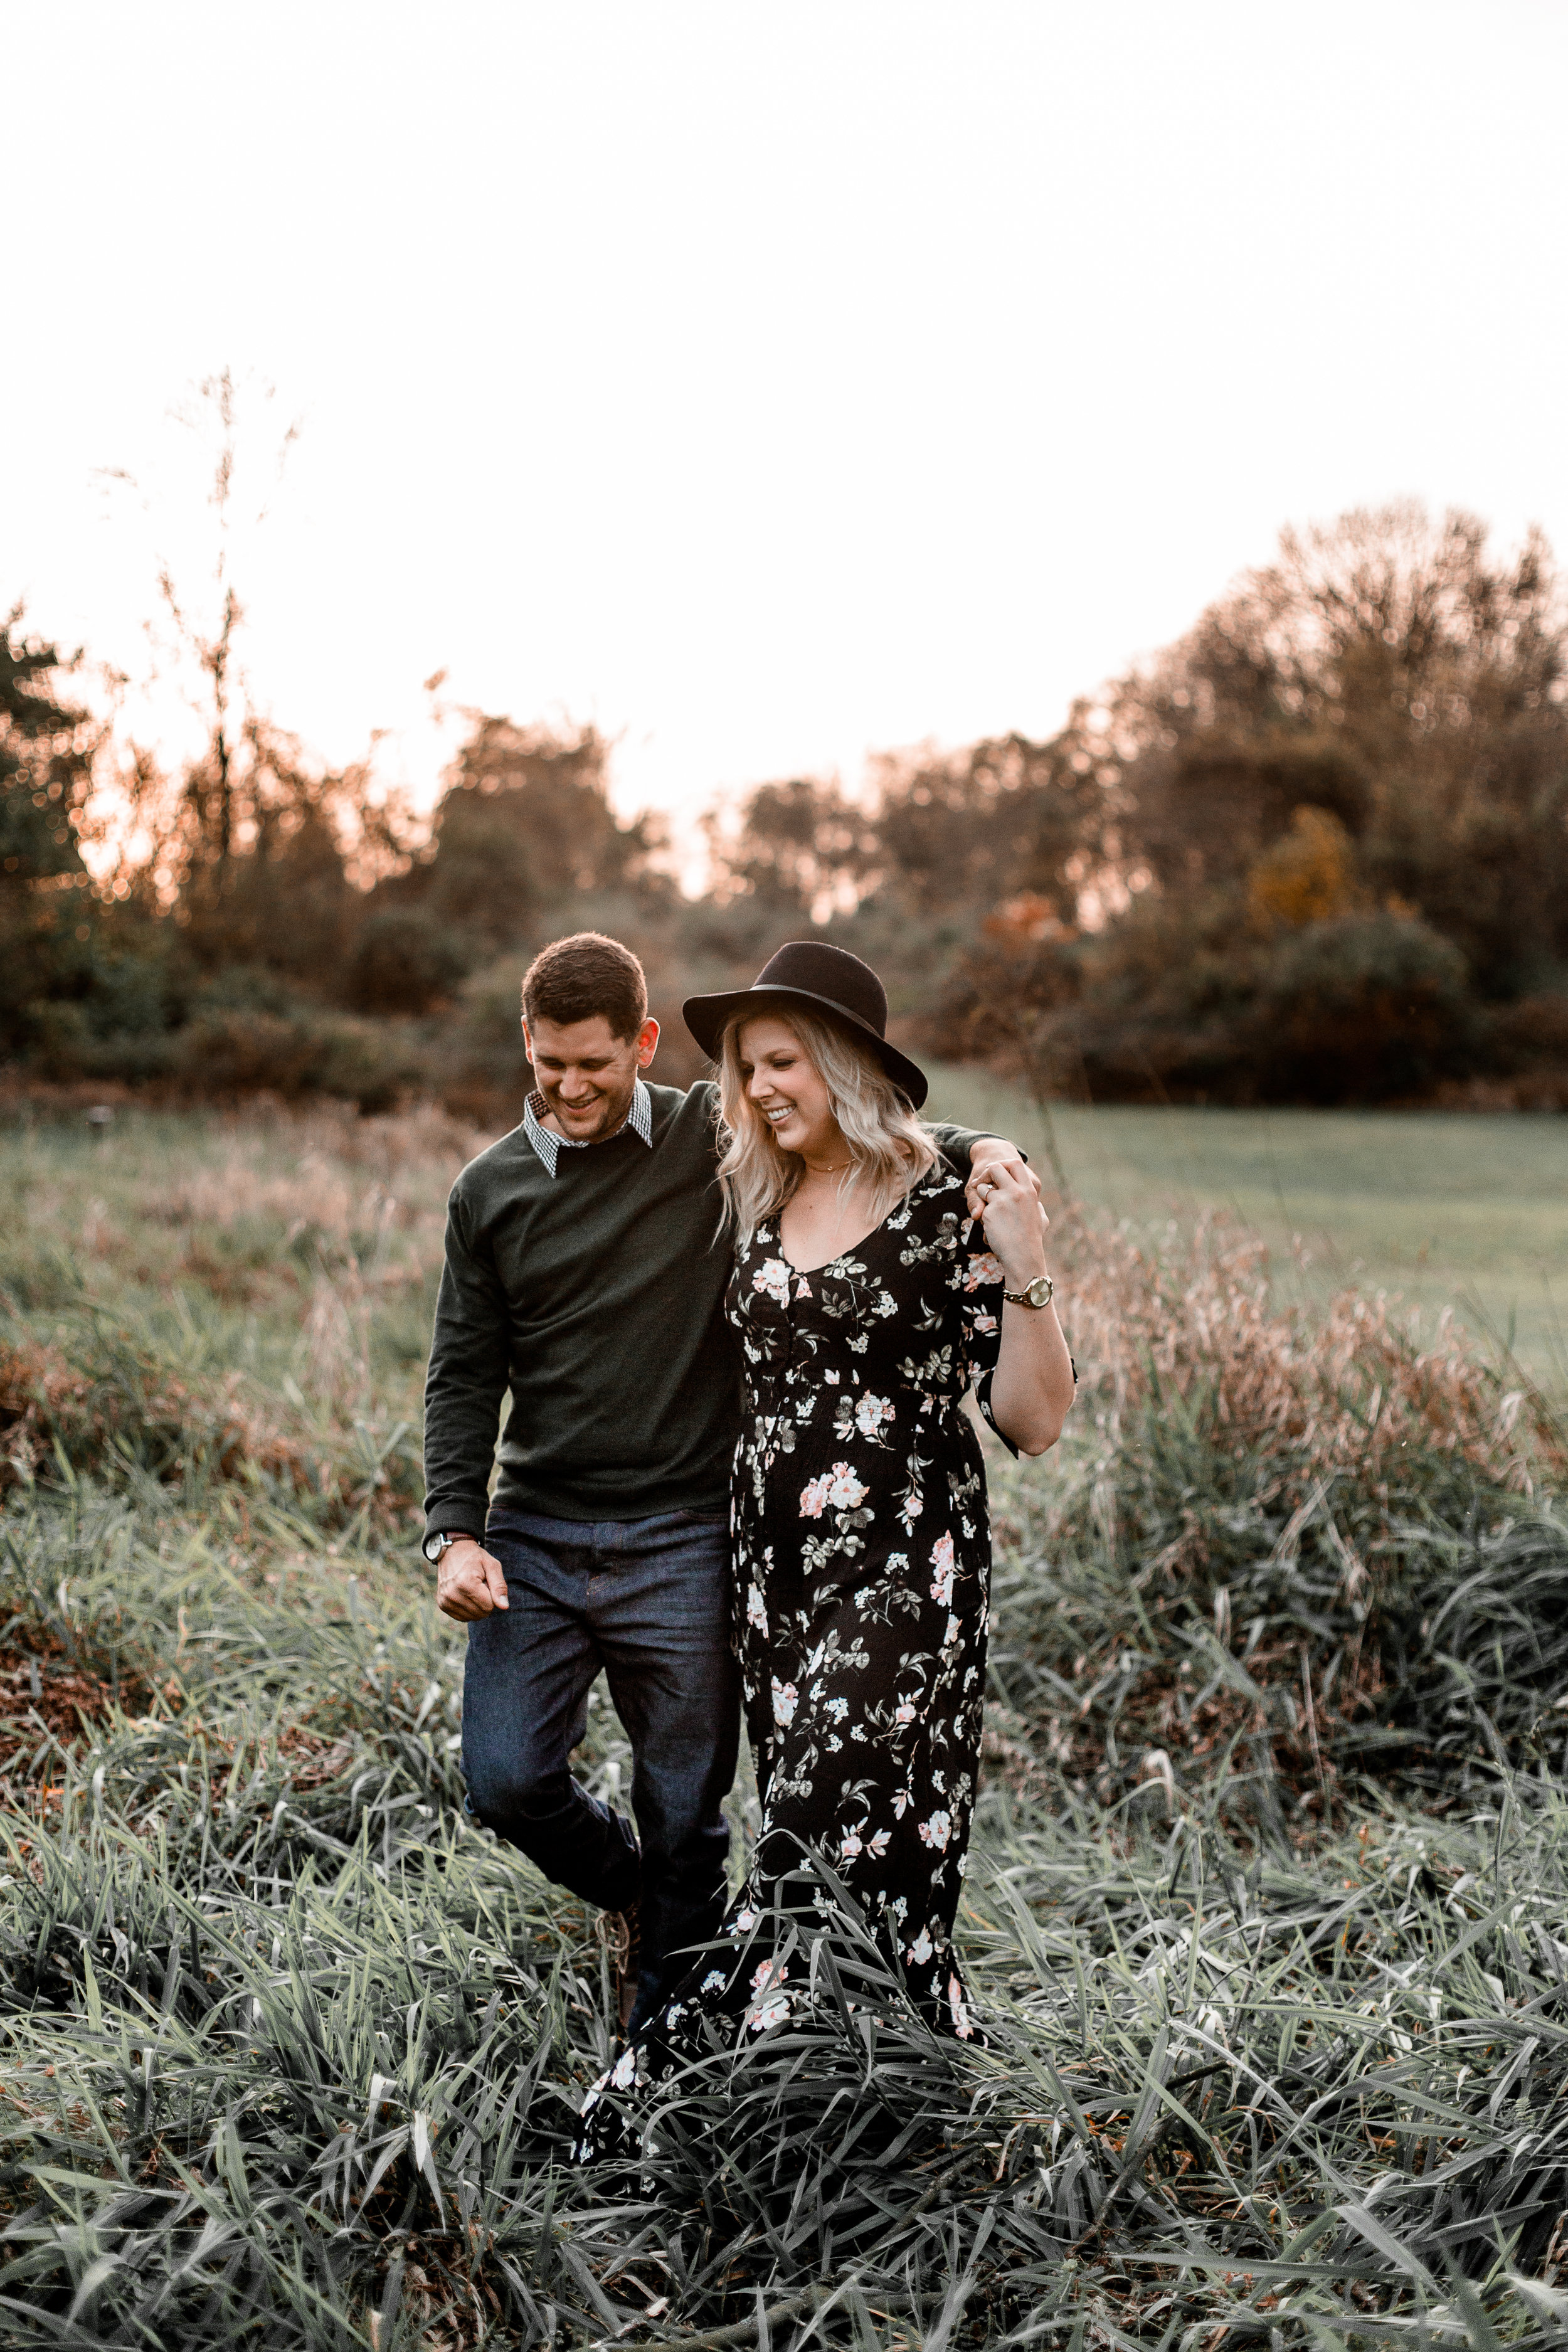 nicole-daacke-photography-carefree-bohemian-lancaster-pa-pennsylvania-engagement-photos-engagement-session-golden-sunset-adventure-session-in-lancaster-pa-lancaster-pa-outdoor-wedding-photographer-29.jpg